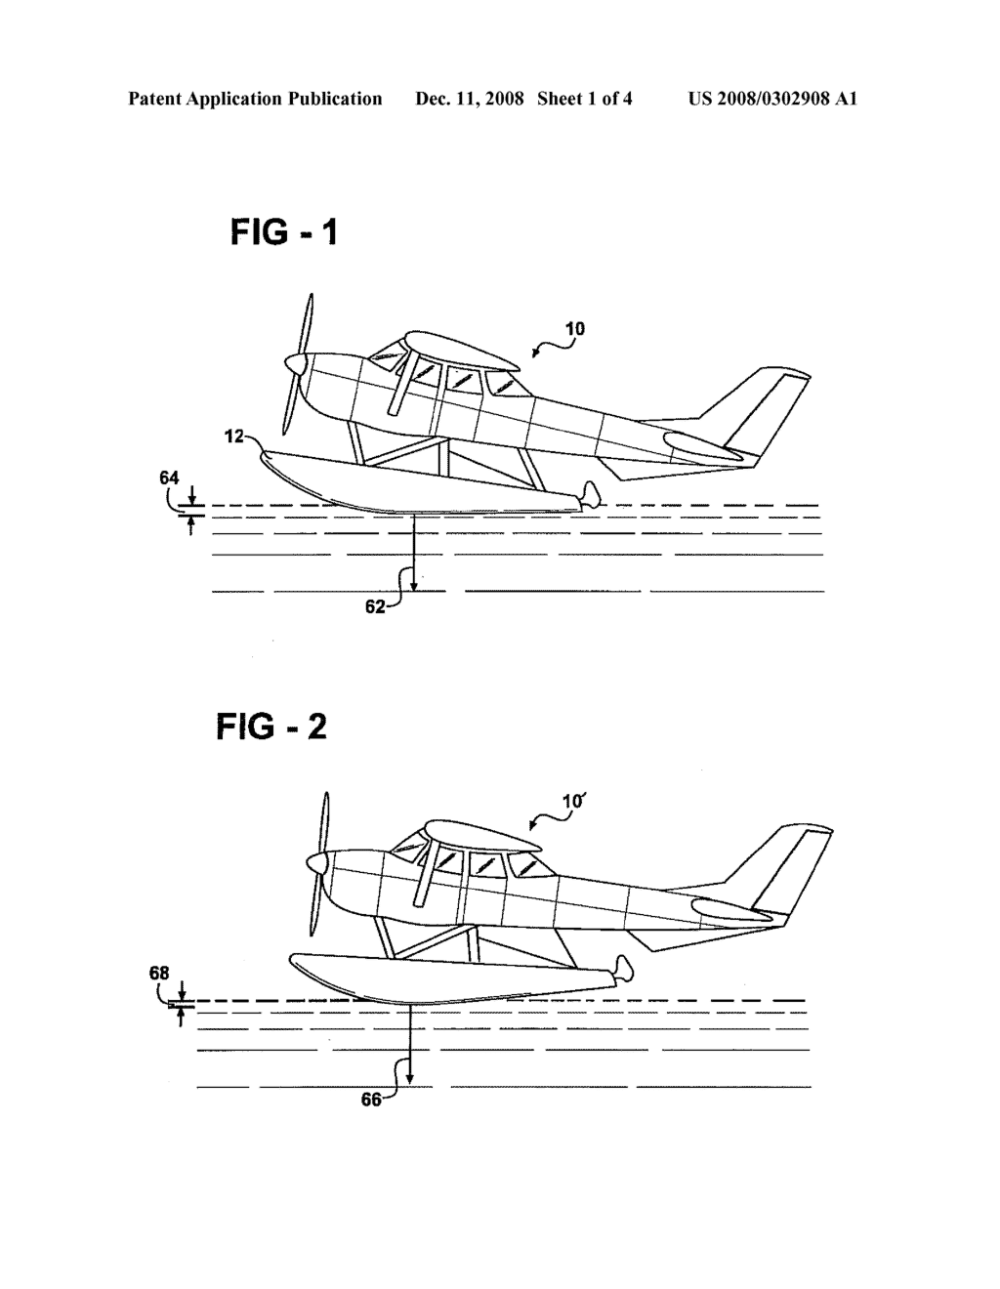 medium resolution of detachable hydrofoil trim tabs for use with seaplane floats for assisting with lower speed on plane condition and stability during step turning chine walk